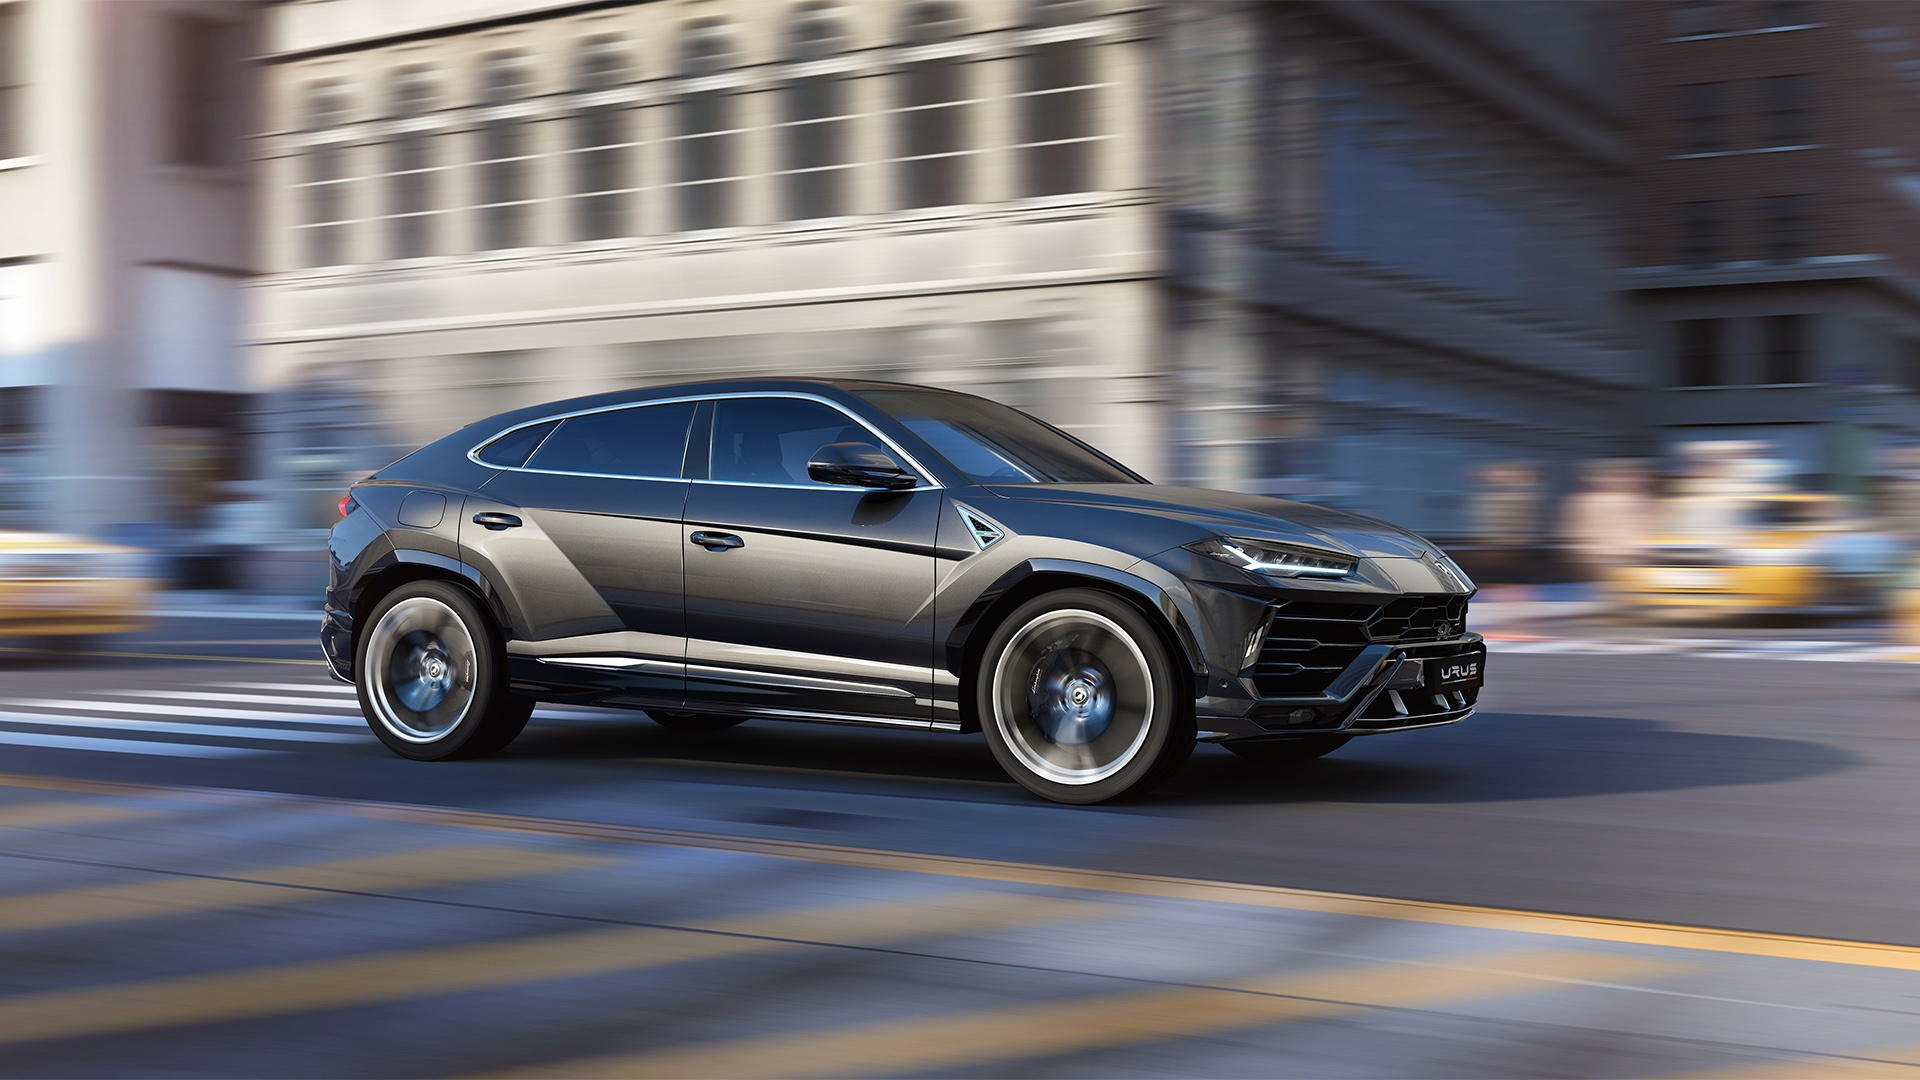 The Age Of The Super Suv Luxury Brands Get In On The 4x4 Action